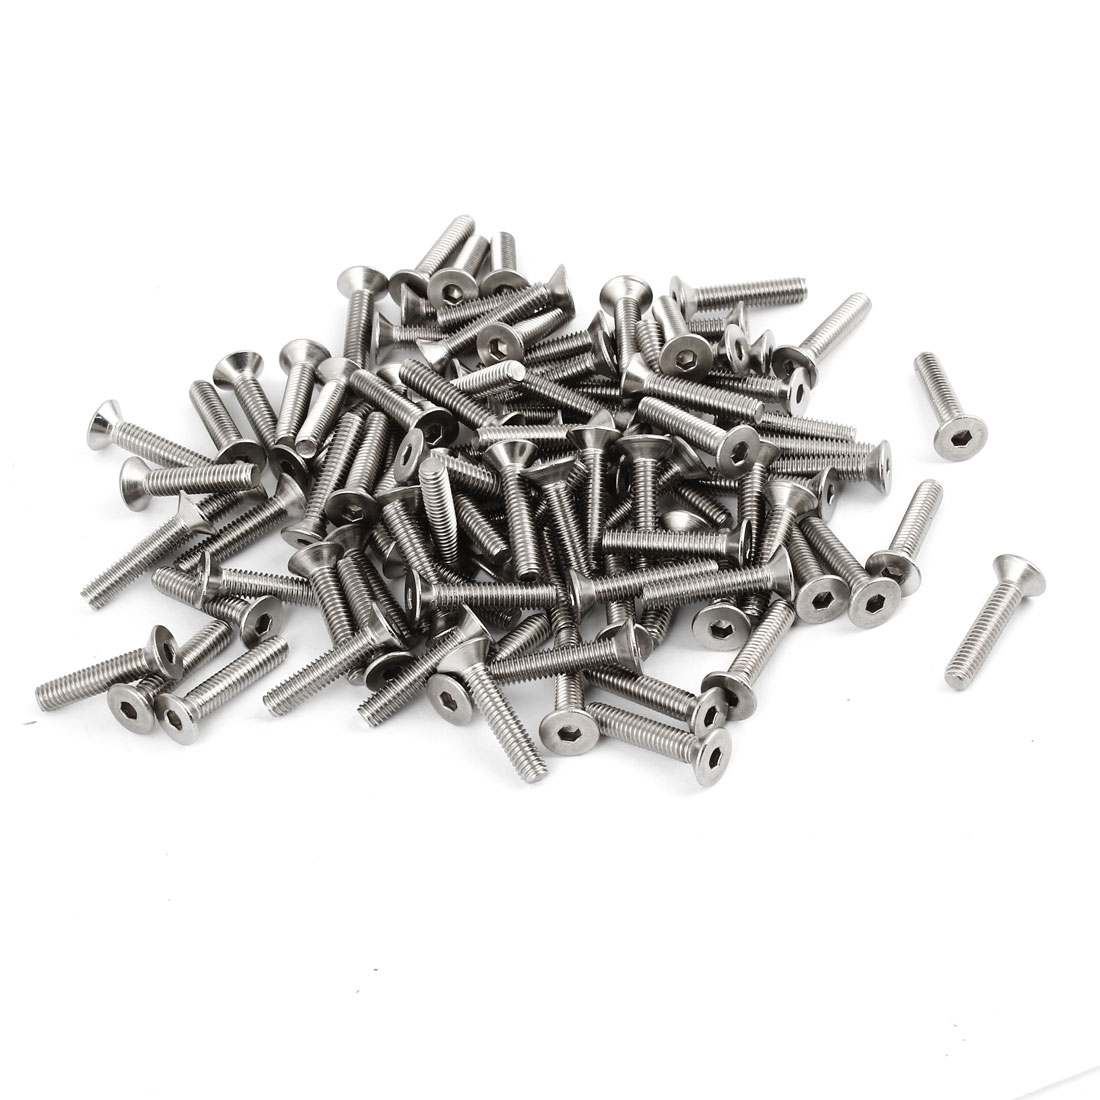 100 Pcs 304HC Stainless Steel Countersunk Flat Head Hex Key Bolt Screw M4x20mm